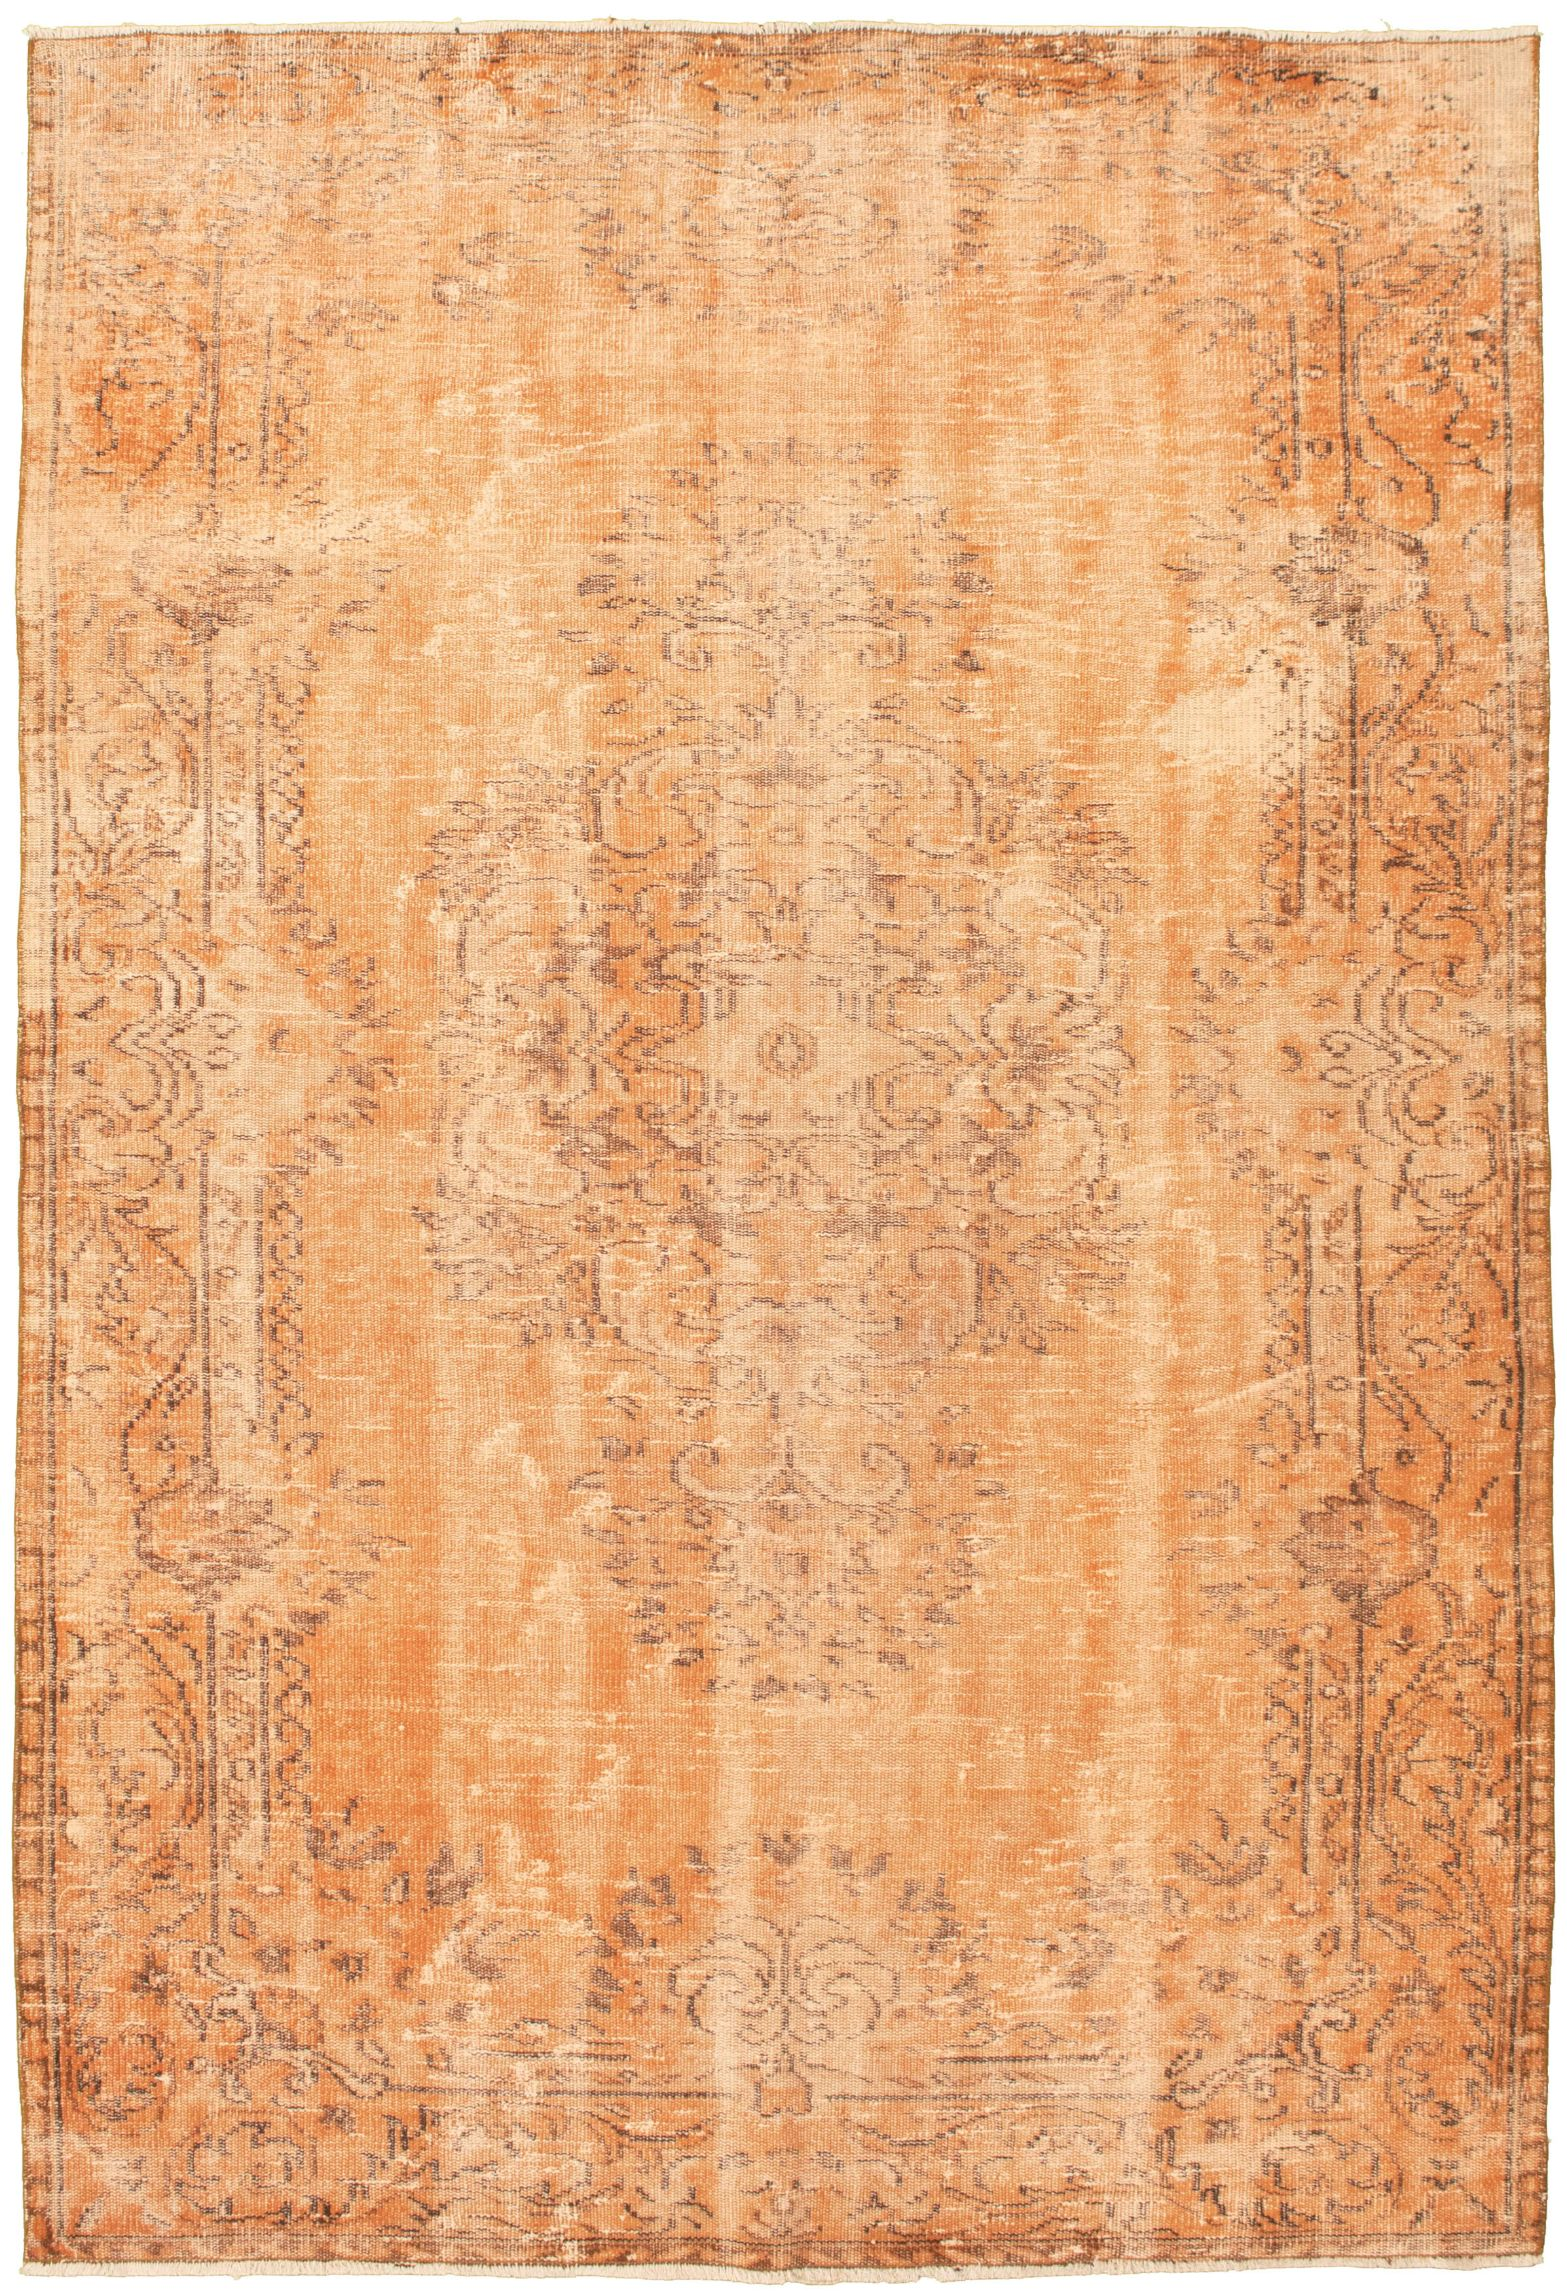 """Hand-knotted Color Transition Orange Wool Rug 5'9"""" x 9'2"""" Size: 5'9"""" x 9'2"""""""